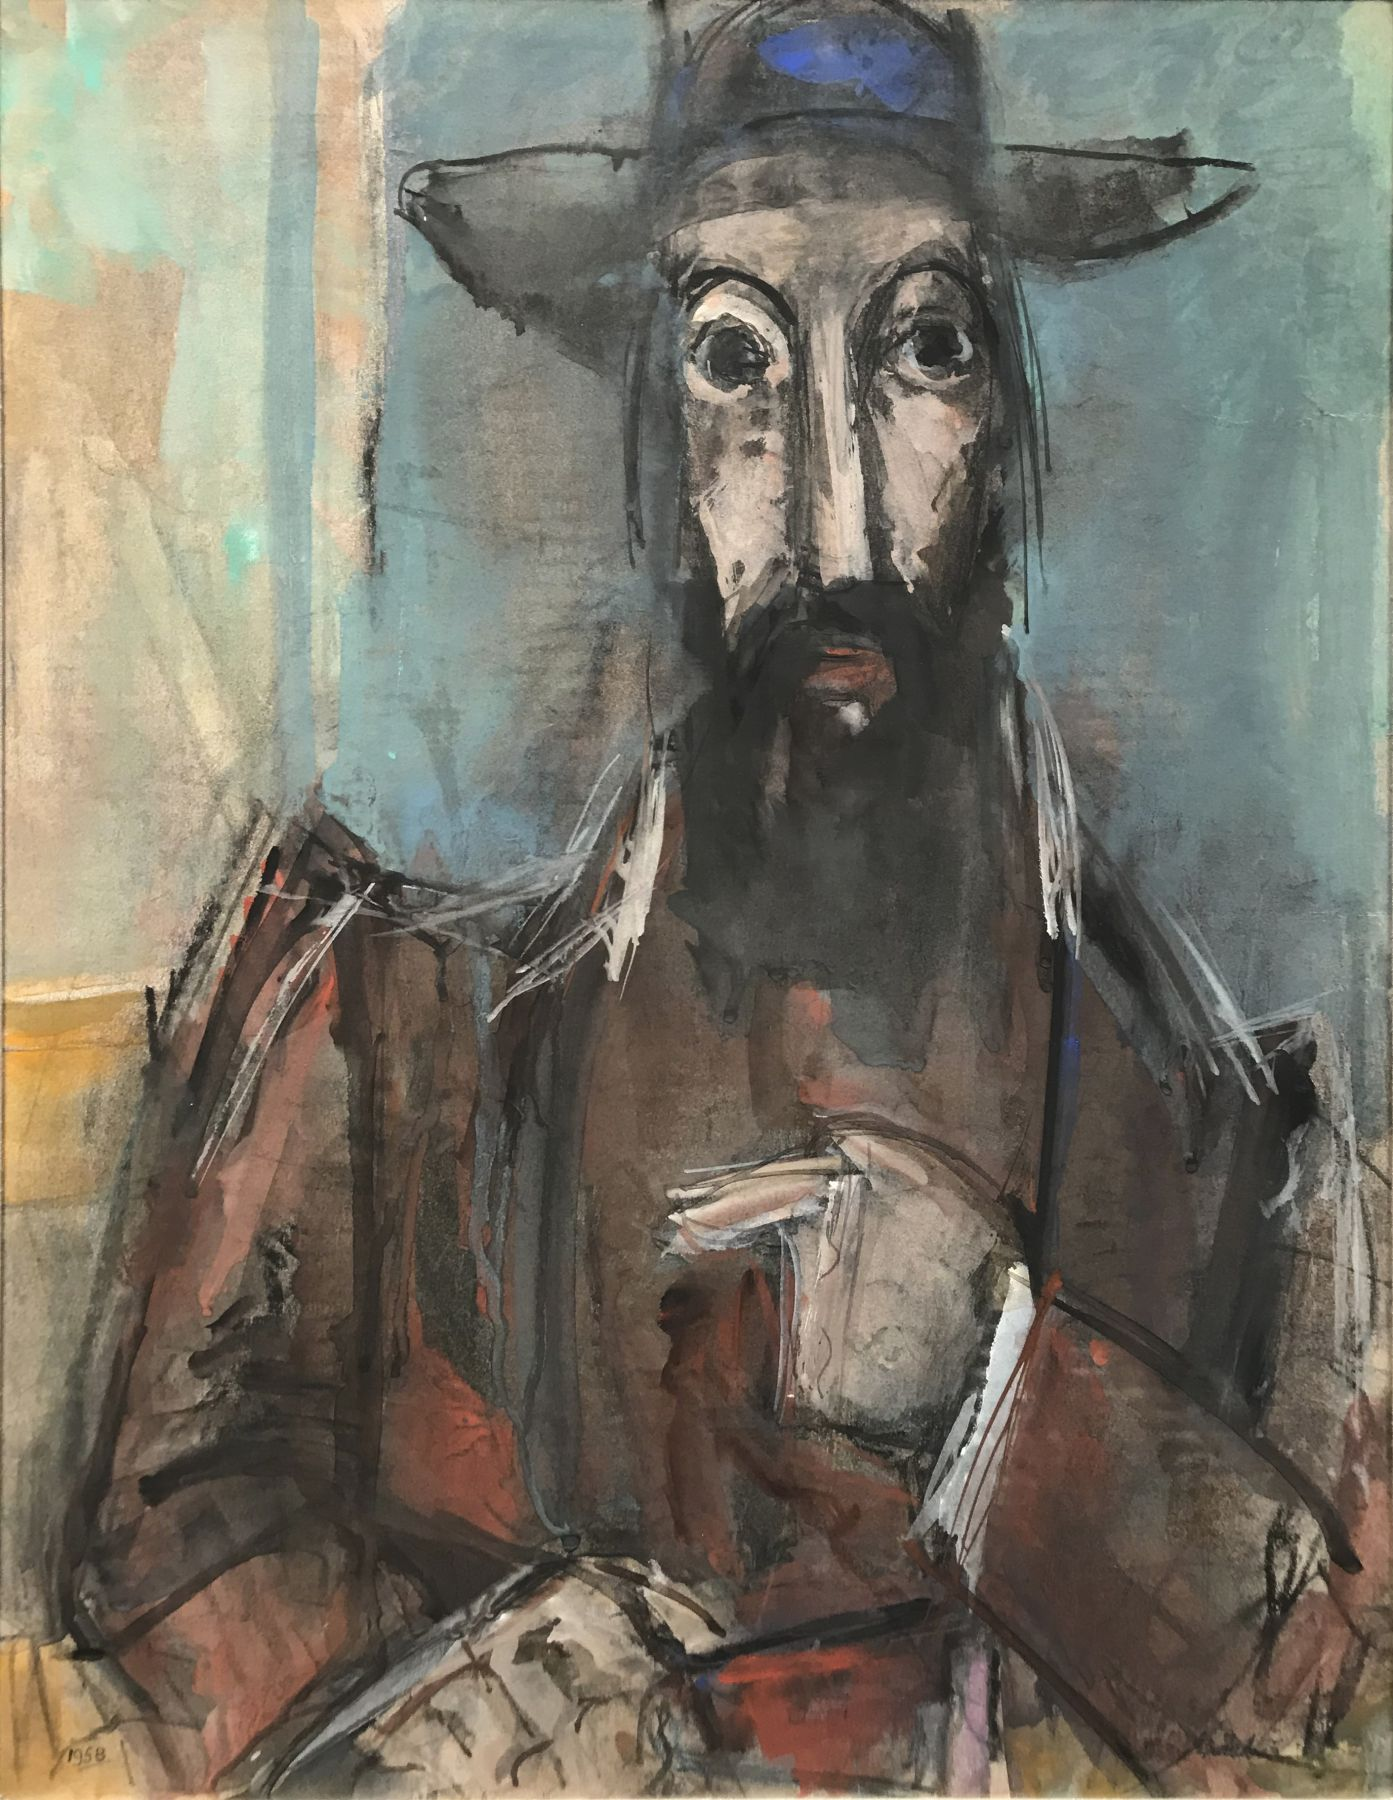 Max Weber, The Rabbi, 1957-58, gouache and pastel on paper, 23 5/8 x 17 5/8 inches